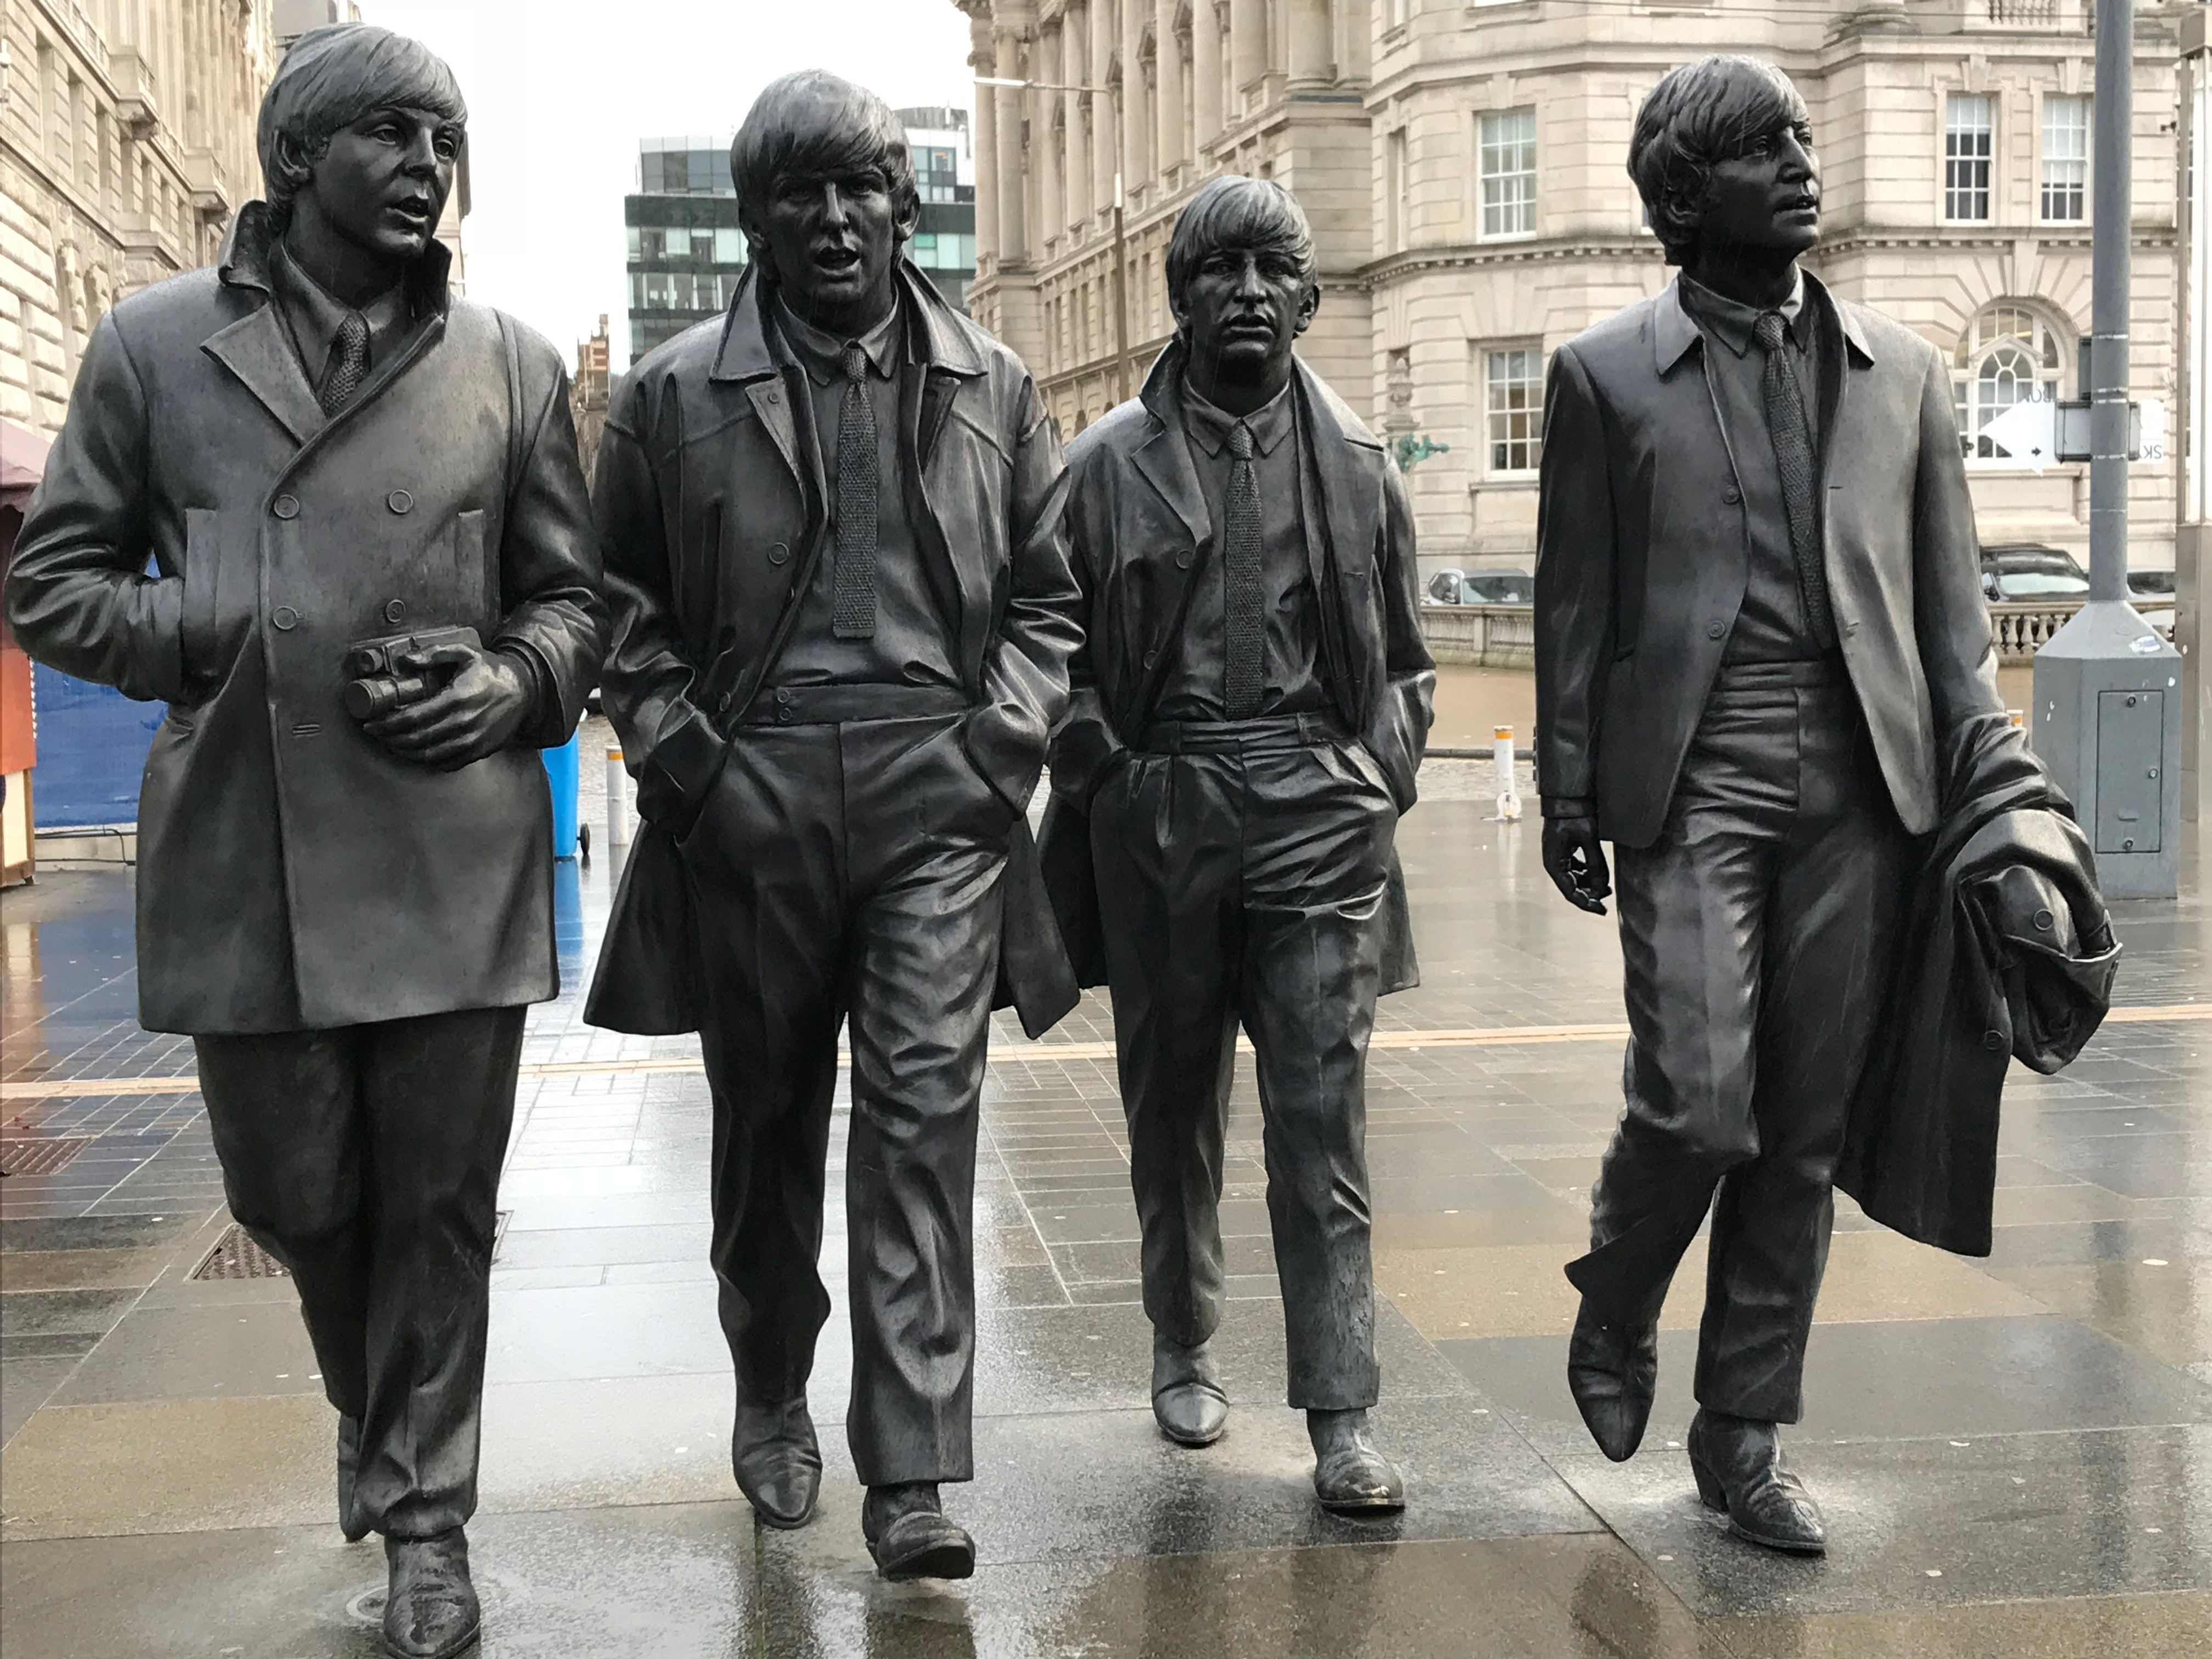 Press Announcement: COME TOGETHER FOR THE MAGIC OF THE BEATLES November 5, 2020